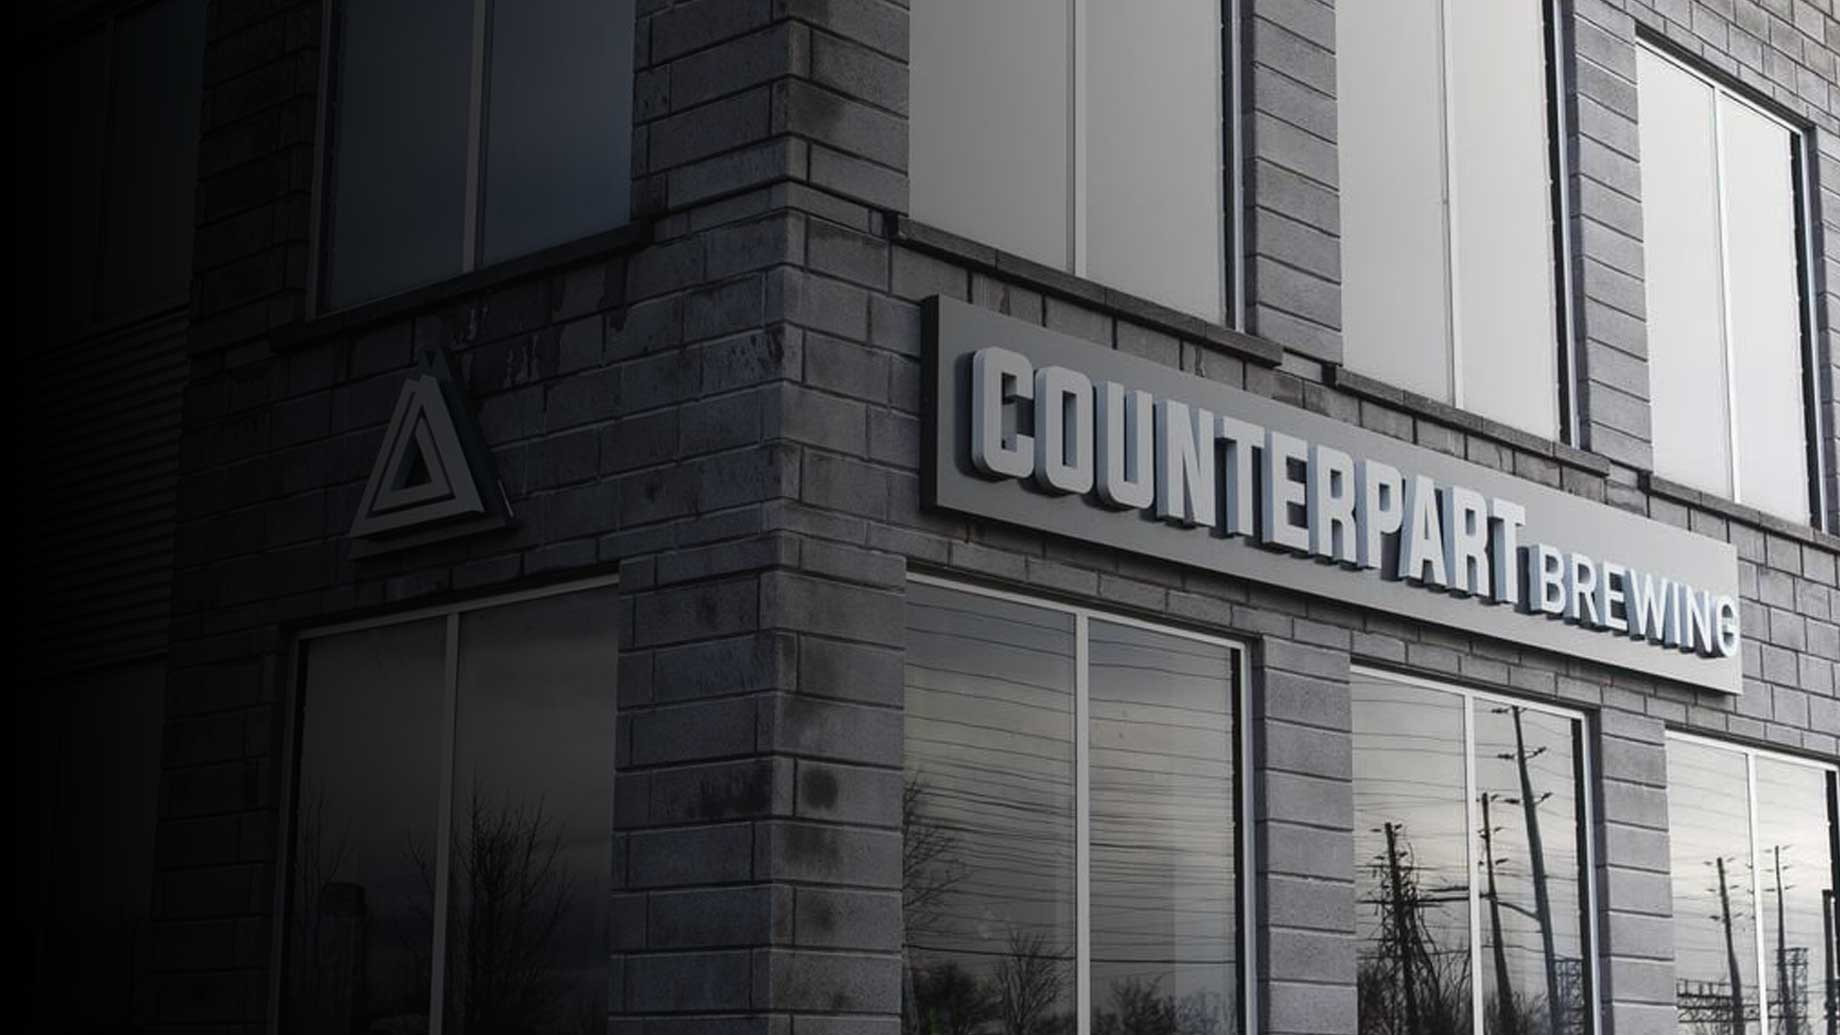 Counterpart Brewing